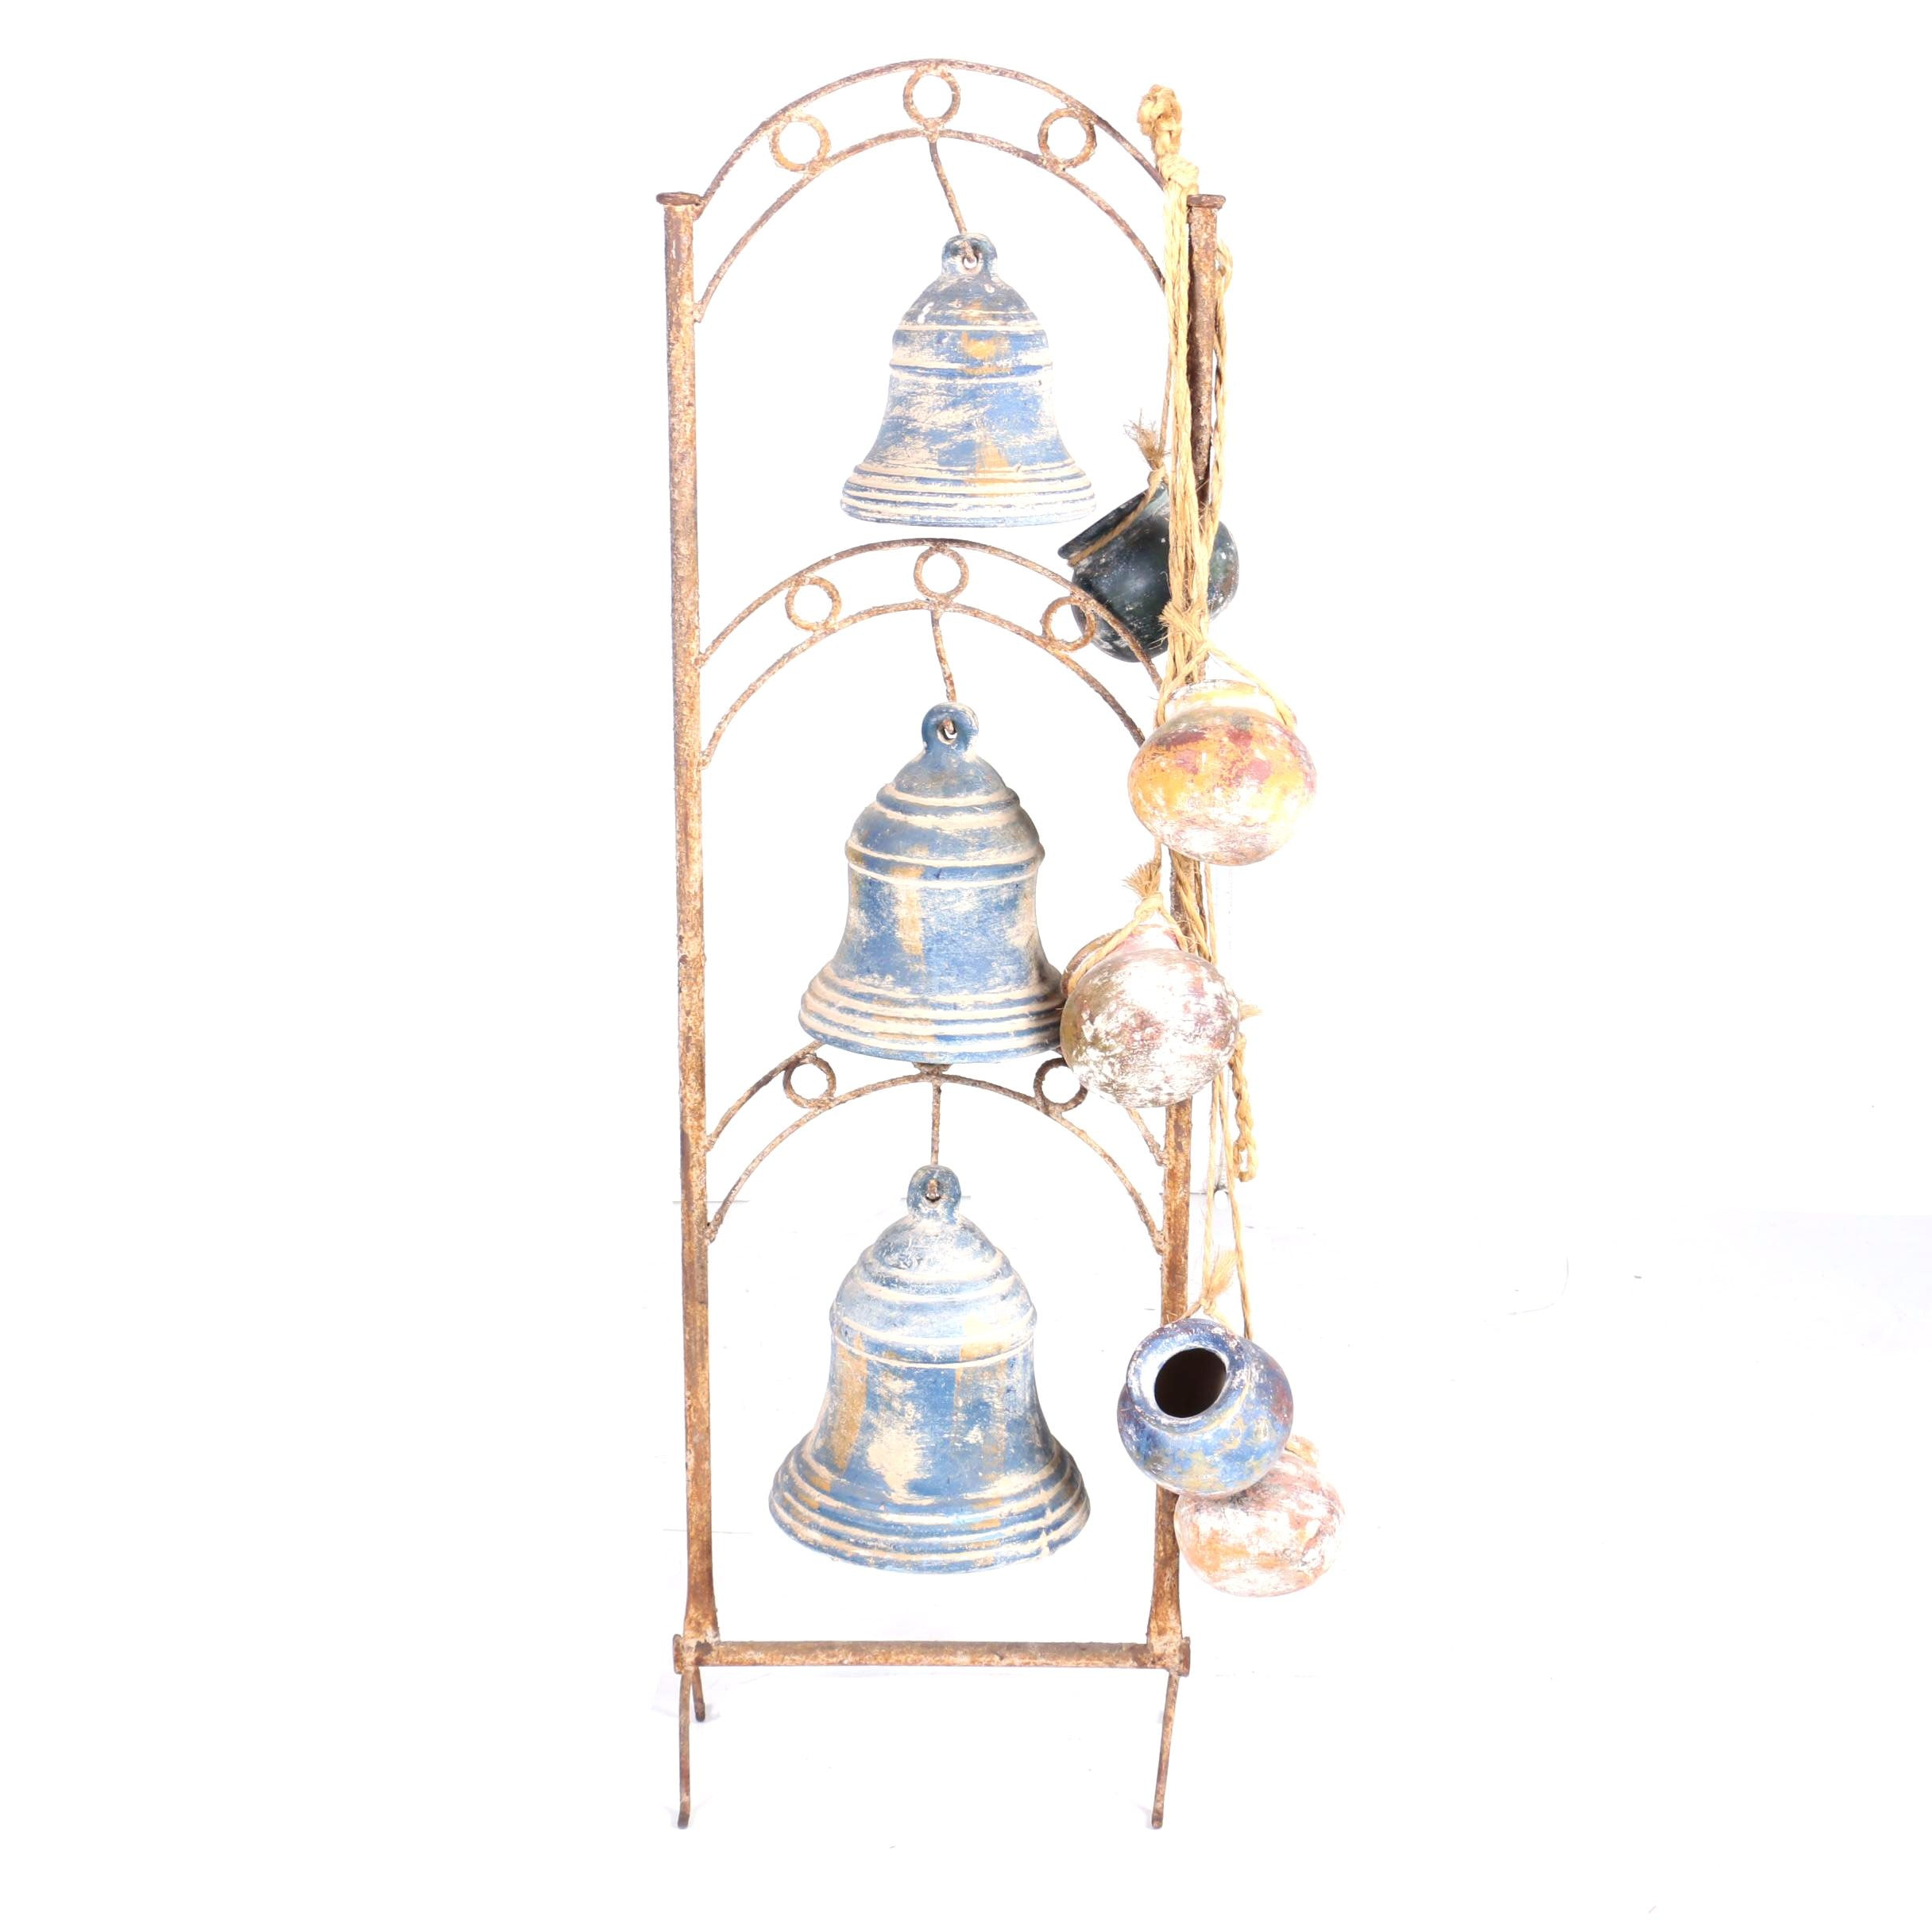 Rustic Ceramic Bells with Iron Metal Stand